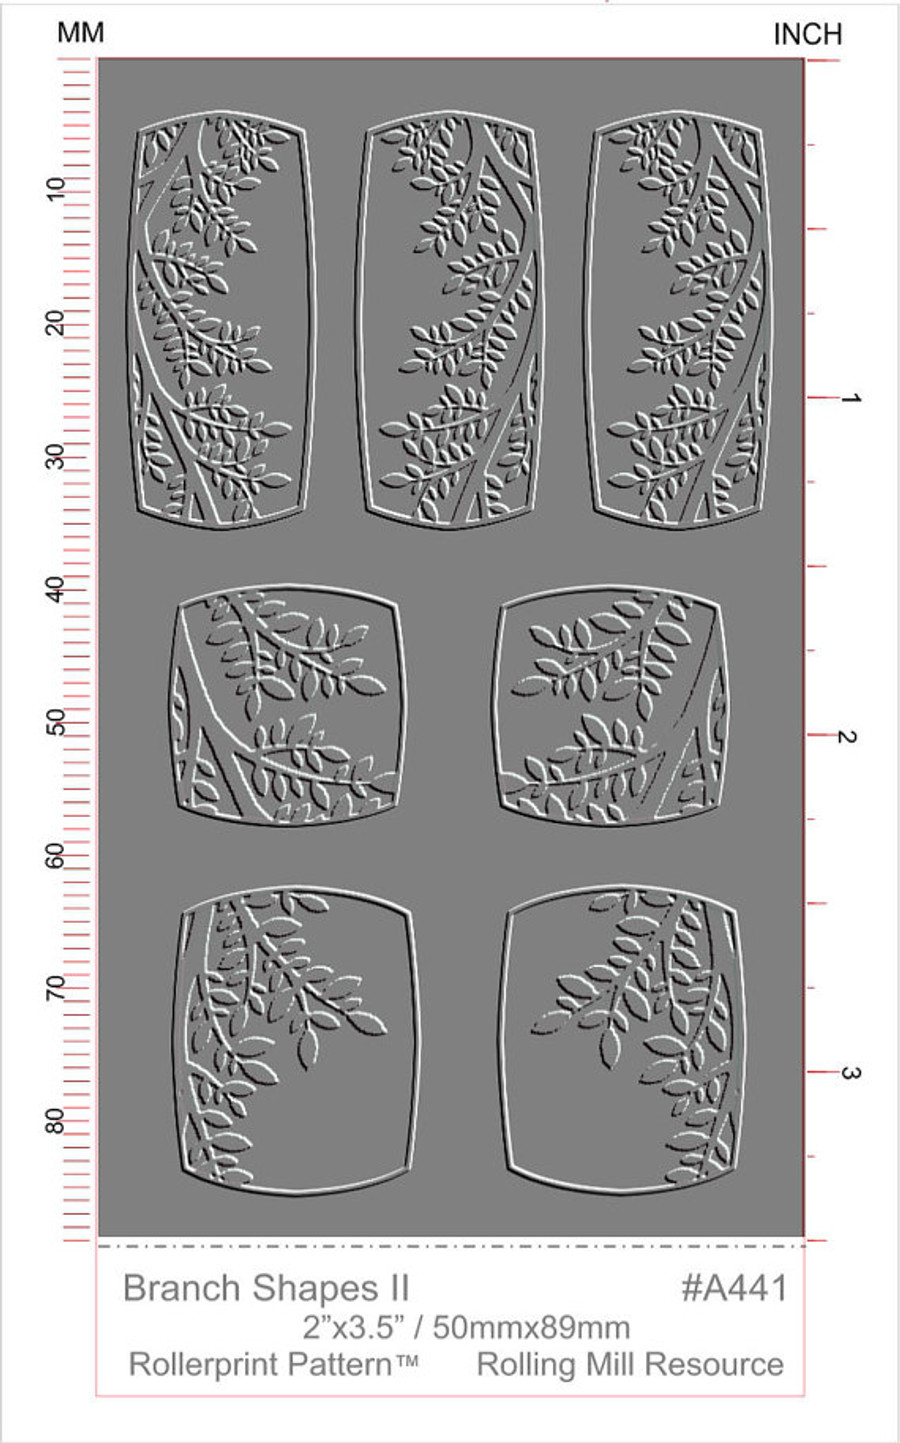 RMR Laser Texture Paper - Branch Shapes II - 50 x 89mm